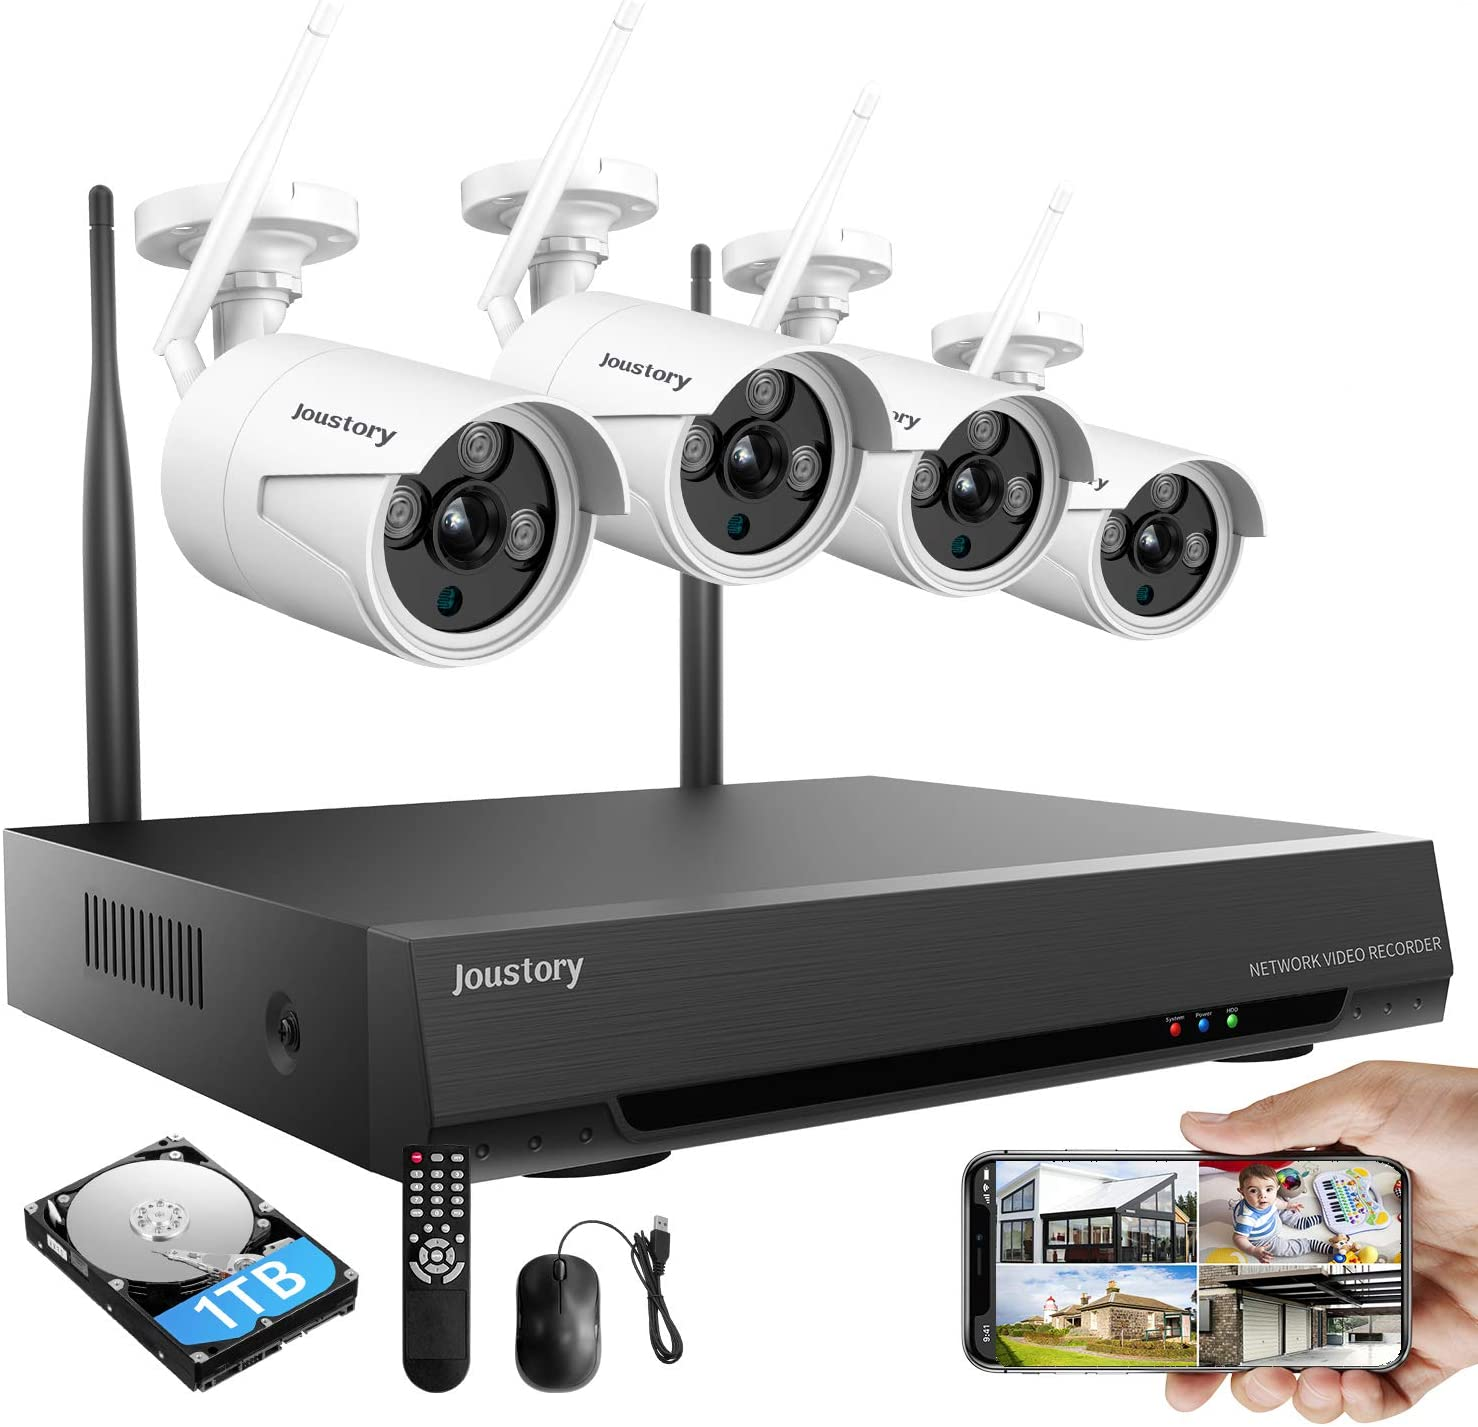 Wireless Home Security Camera System, 8CH 1080P Surveillance NVR Kits with 4pcs 2.0MP Cameras Outdoor & Indoor with 100ft Night Vision, IP66 Waterproof, 1TB HDD, Audio & Video, Plug & Play